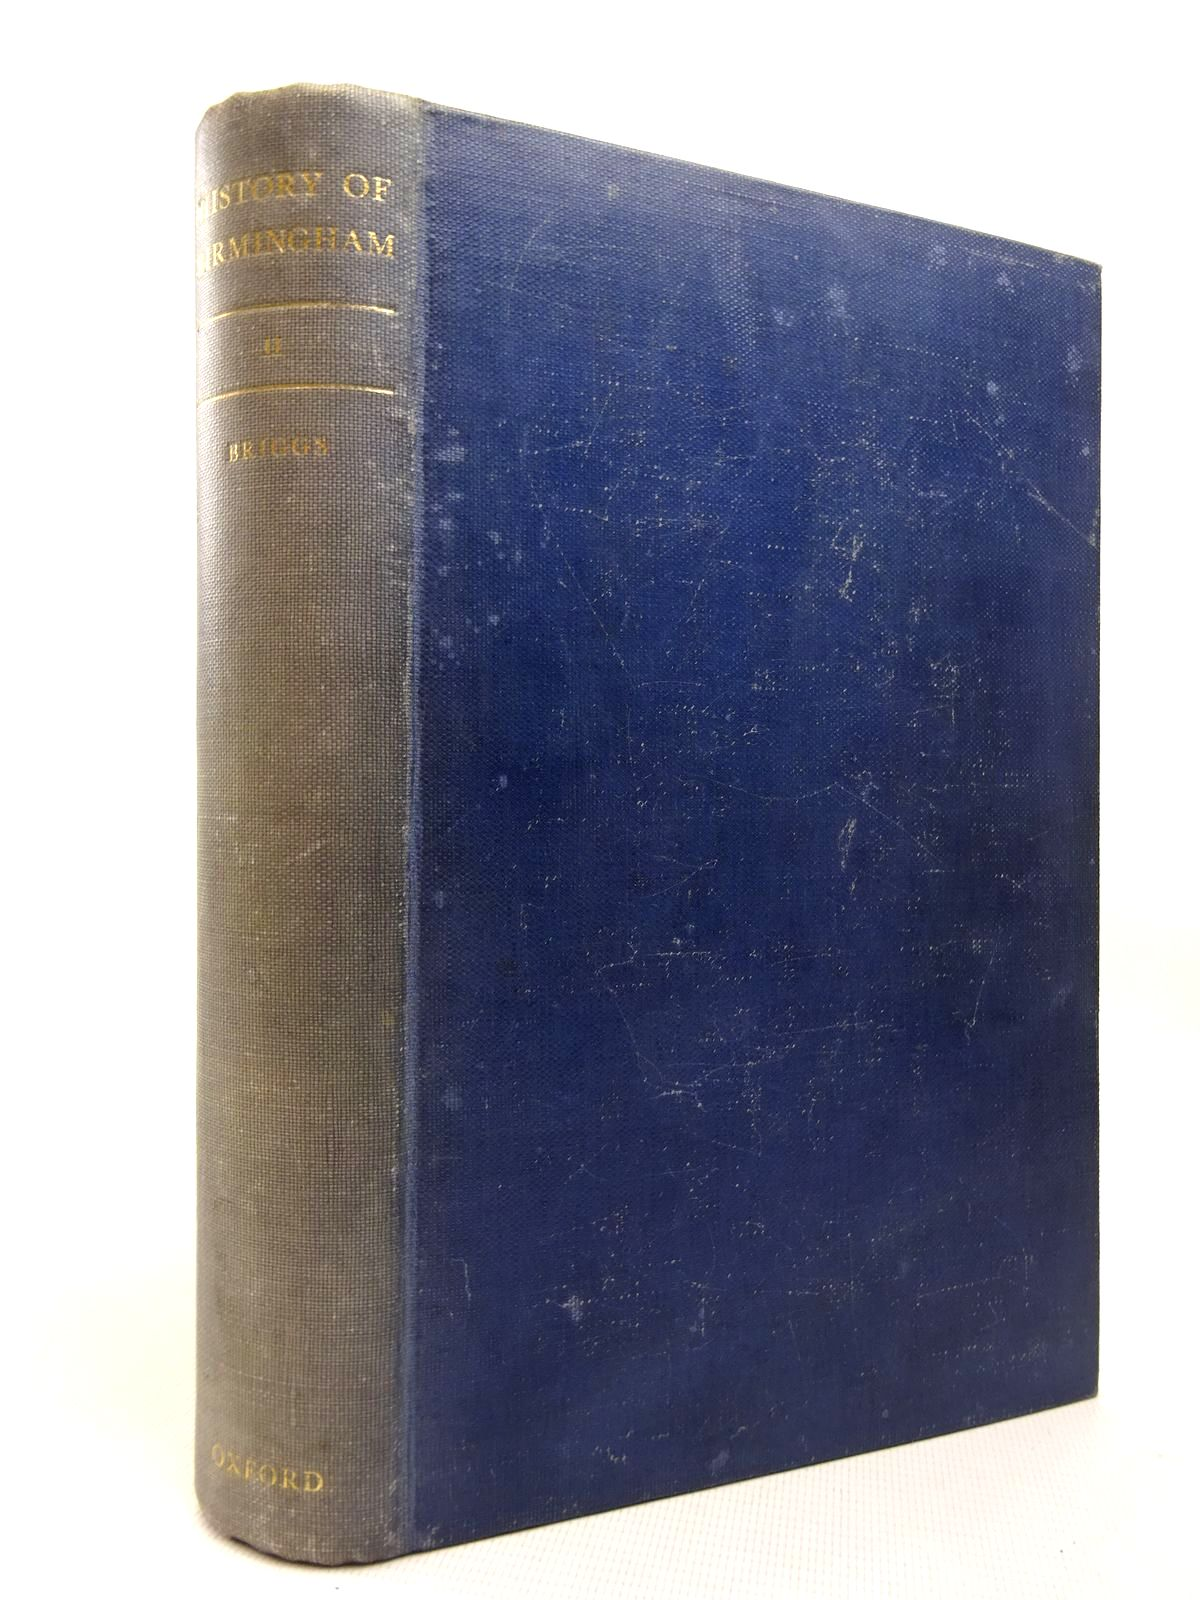 Photo of HISTORY OF BIRMINGHAM VOLUME II written by Briggs, Asa published by Oxford University Press (STOCK CODE: 1816338)  for sale by Stella & Rose's Books